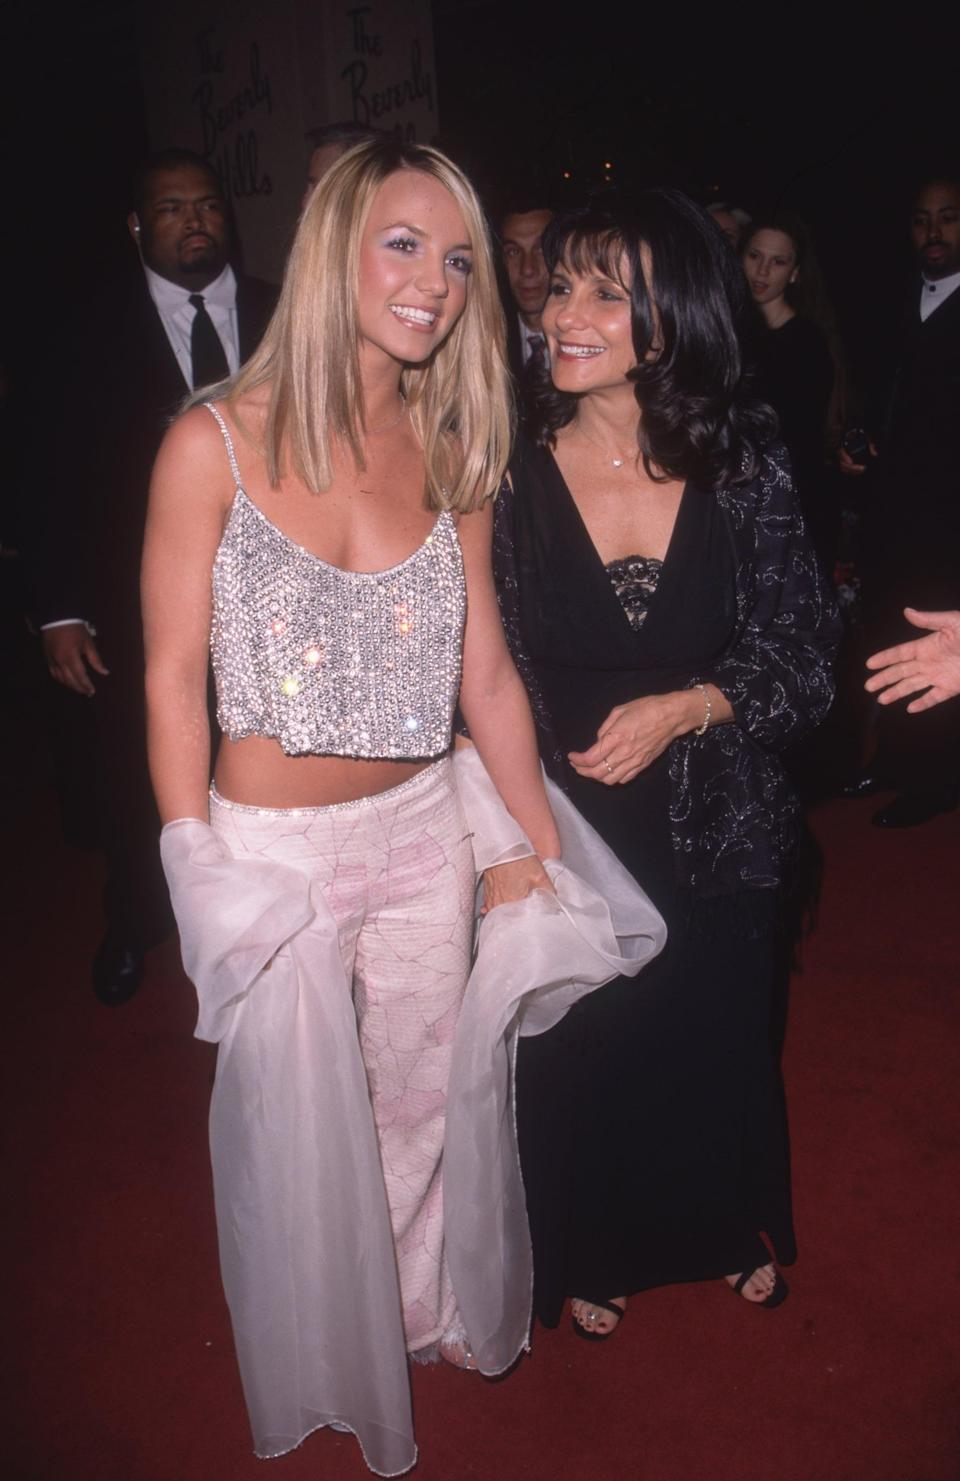 22nd February 2000:  Full-length image of American pop singer Britney Spears (L) with her mother Lynne Spears at the Arista Records pre-Grammy Awards party, Beverly Hills Hotel, Beverly Hills, California.  Britney was nominated for Best New Artist and Best Female Pop Vocal Performance. She is wearing a midriff-bearing silver rhinestone tank top, pink and white pants and a white shawl.  (Photo by Paul Skipper/Fotos International/Getty Images)